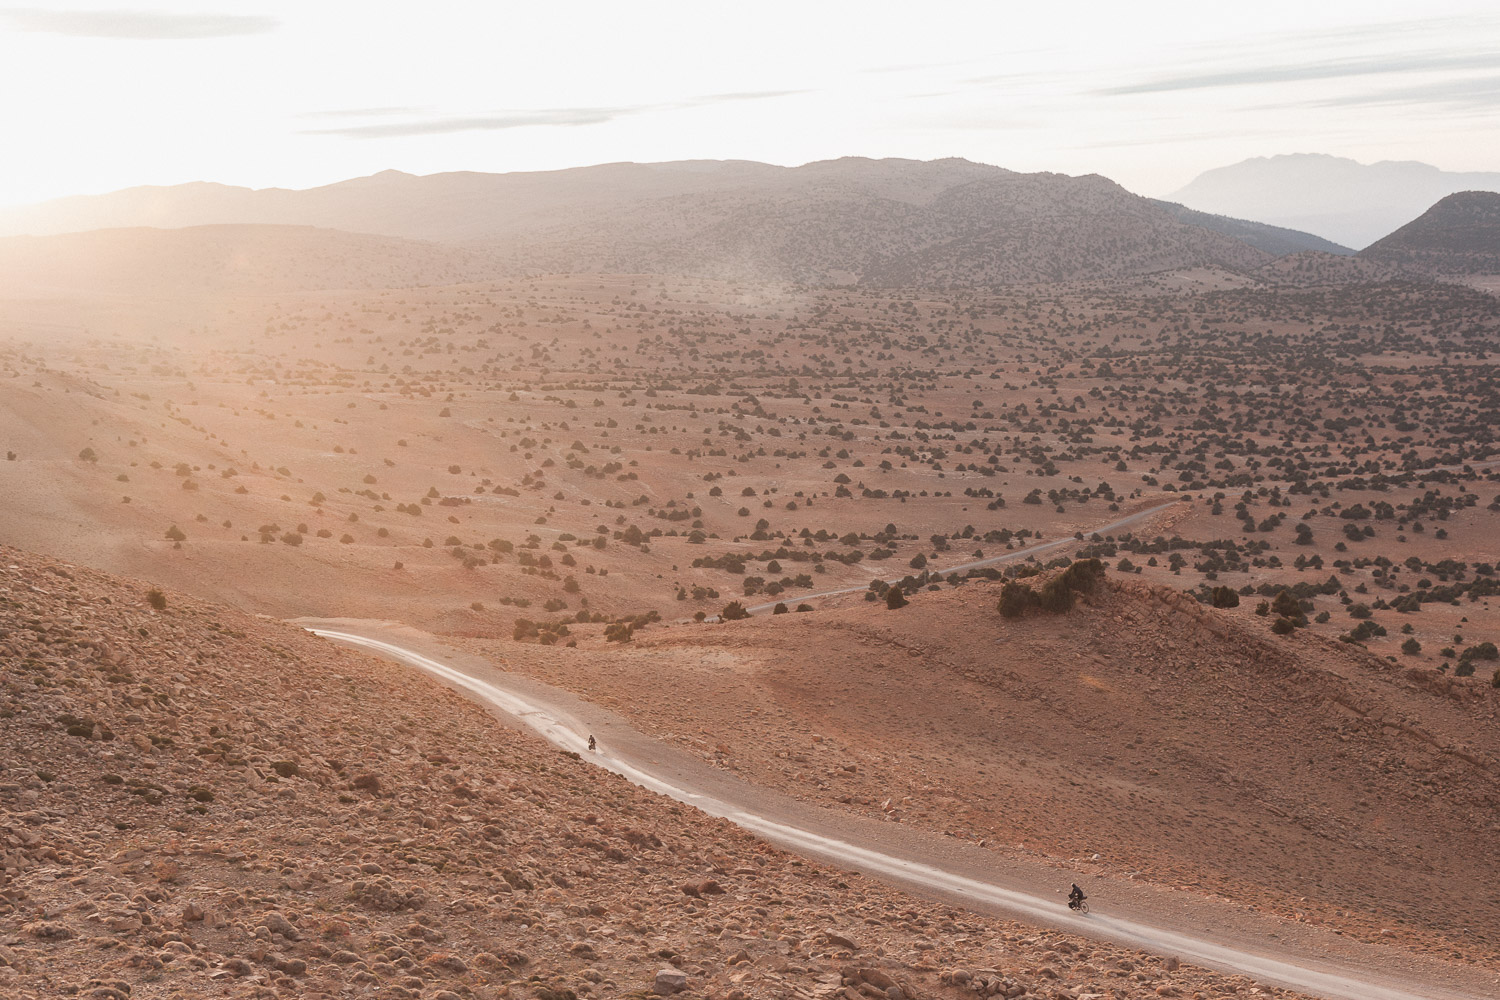 8bar bikes adventures morocco gravel 20151214 0119 bearbeitet - 8bar Adventures - Morocco - High Atlas - Part 2/2